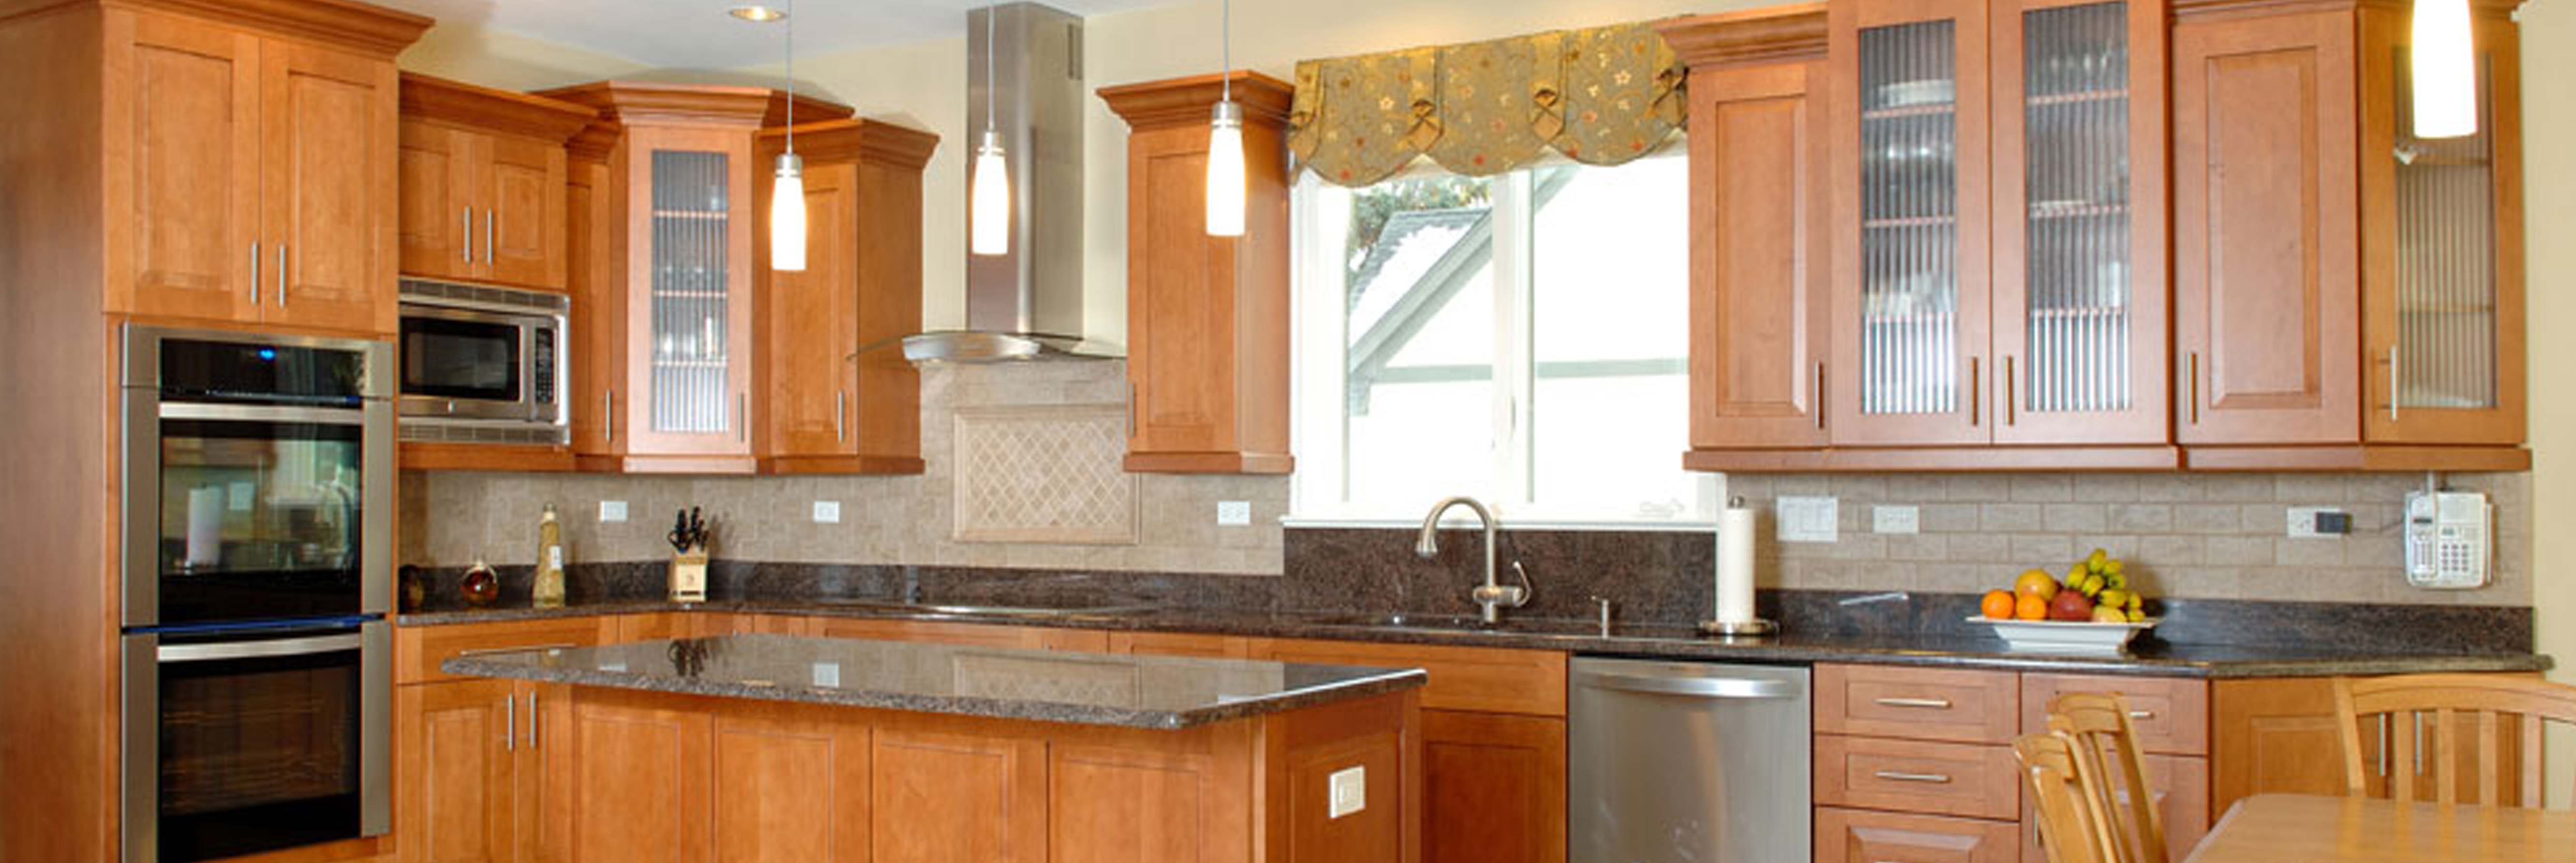 Kitchen contractor remodeling Downers Grove IL